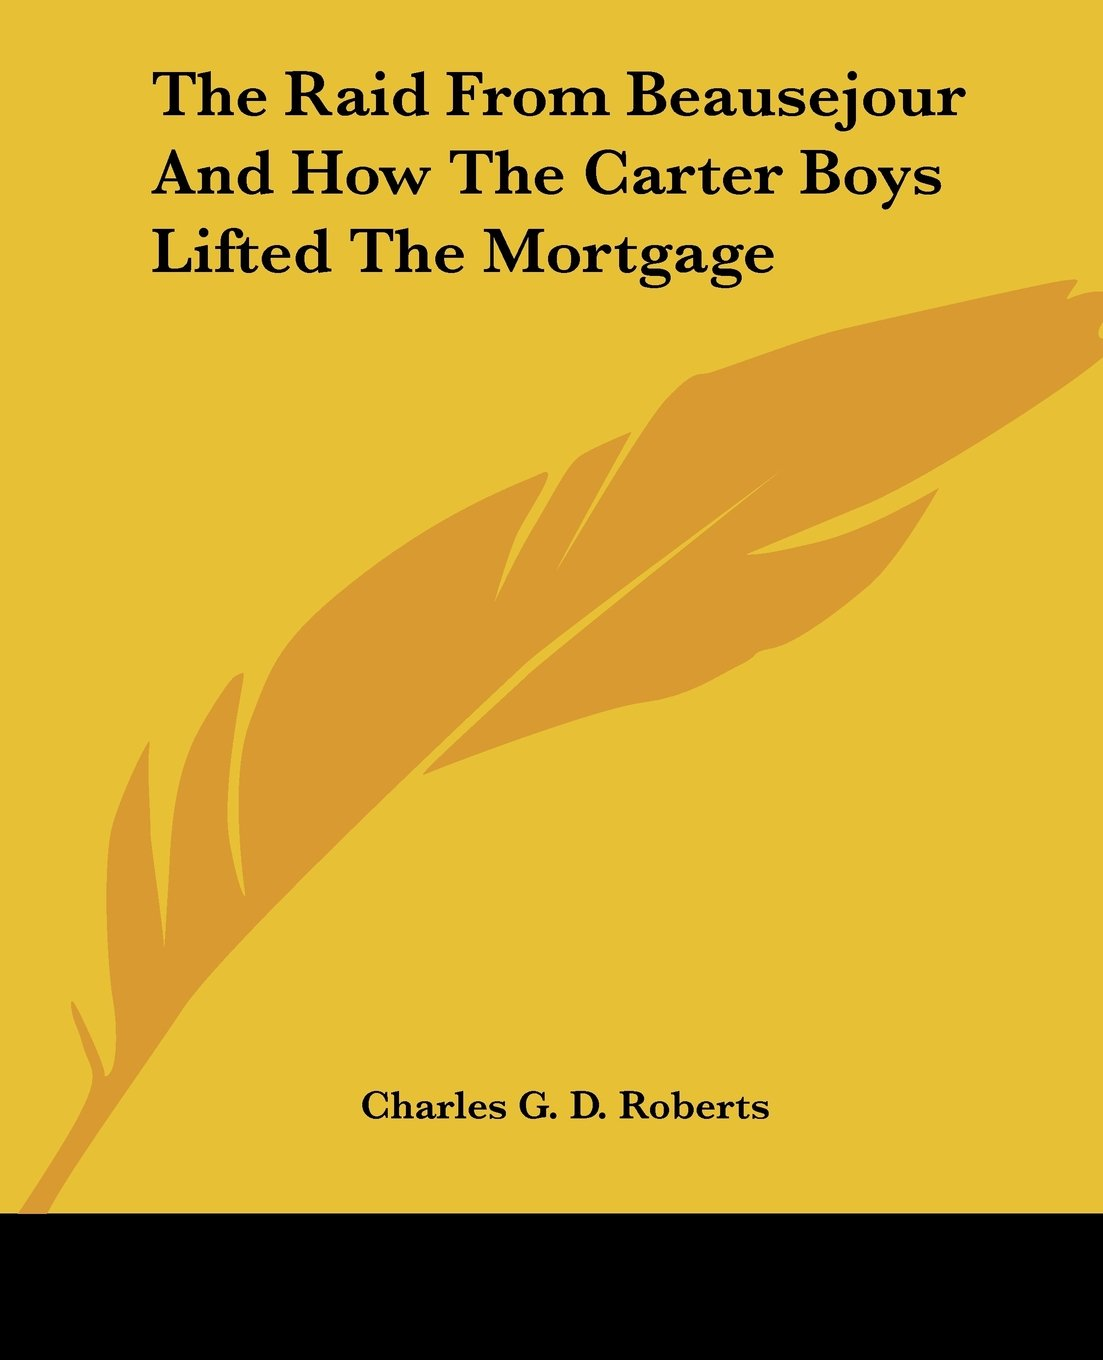 The Raid From Beausejour And How The Carter Boys Lifted The Mortgage pdf epub